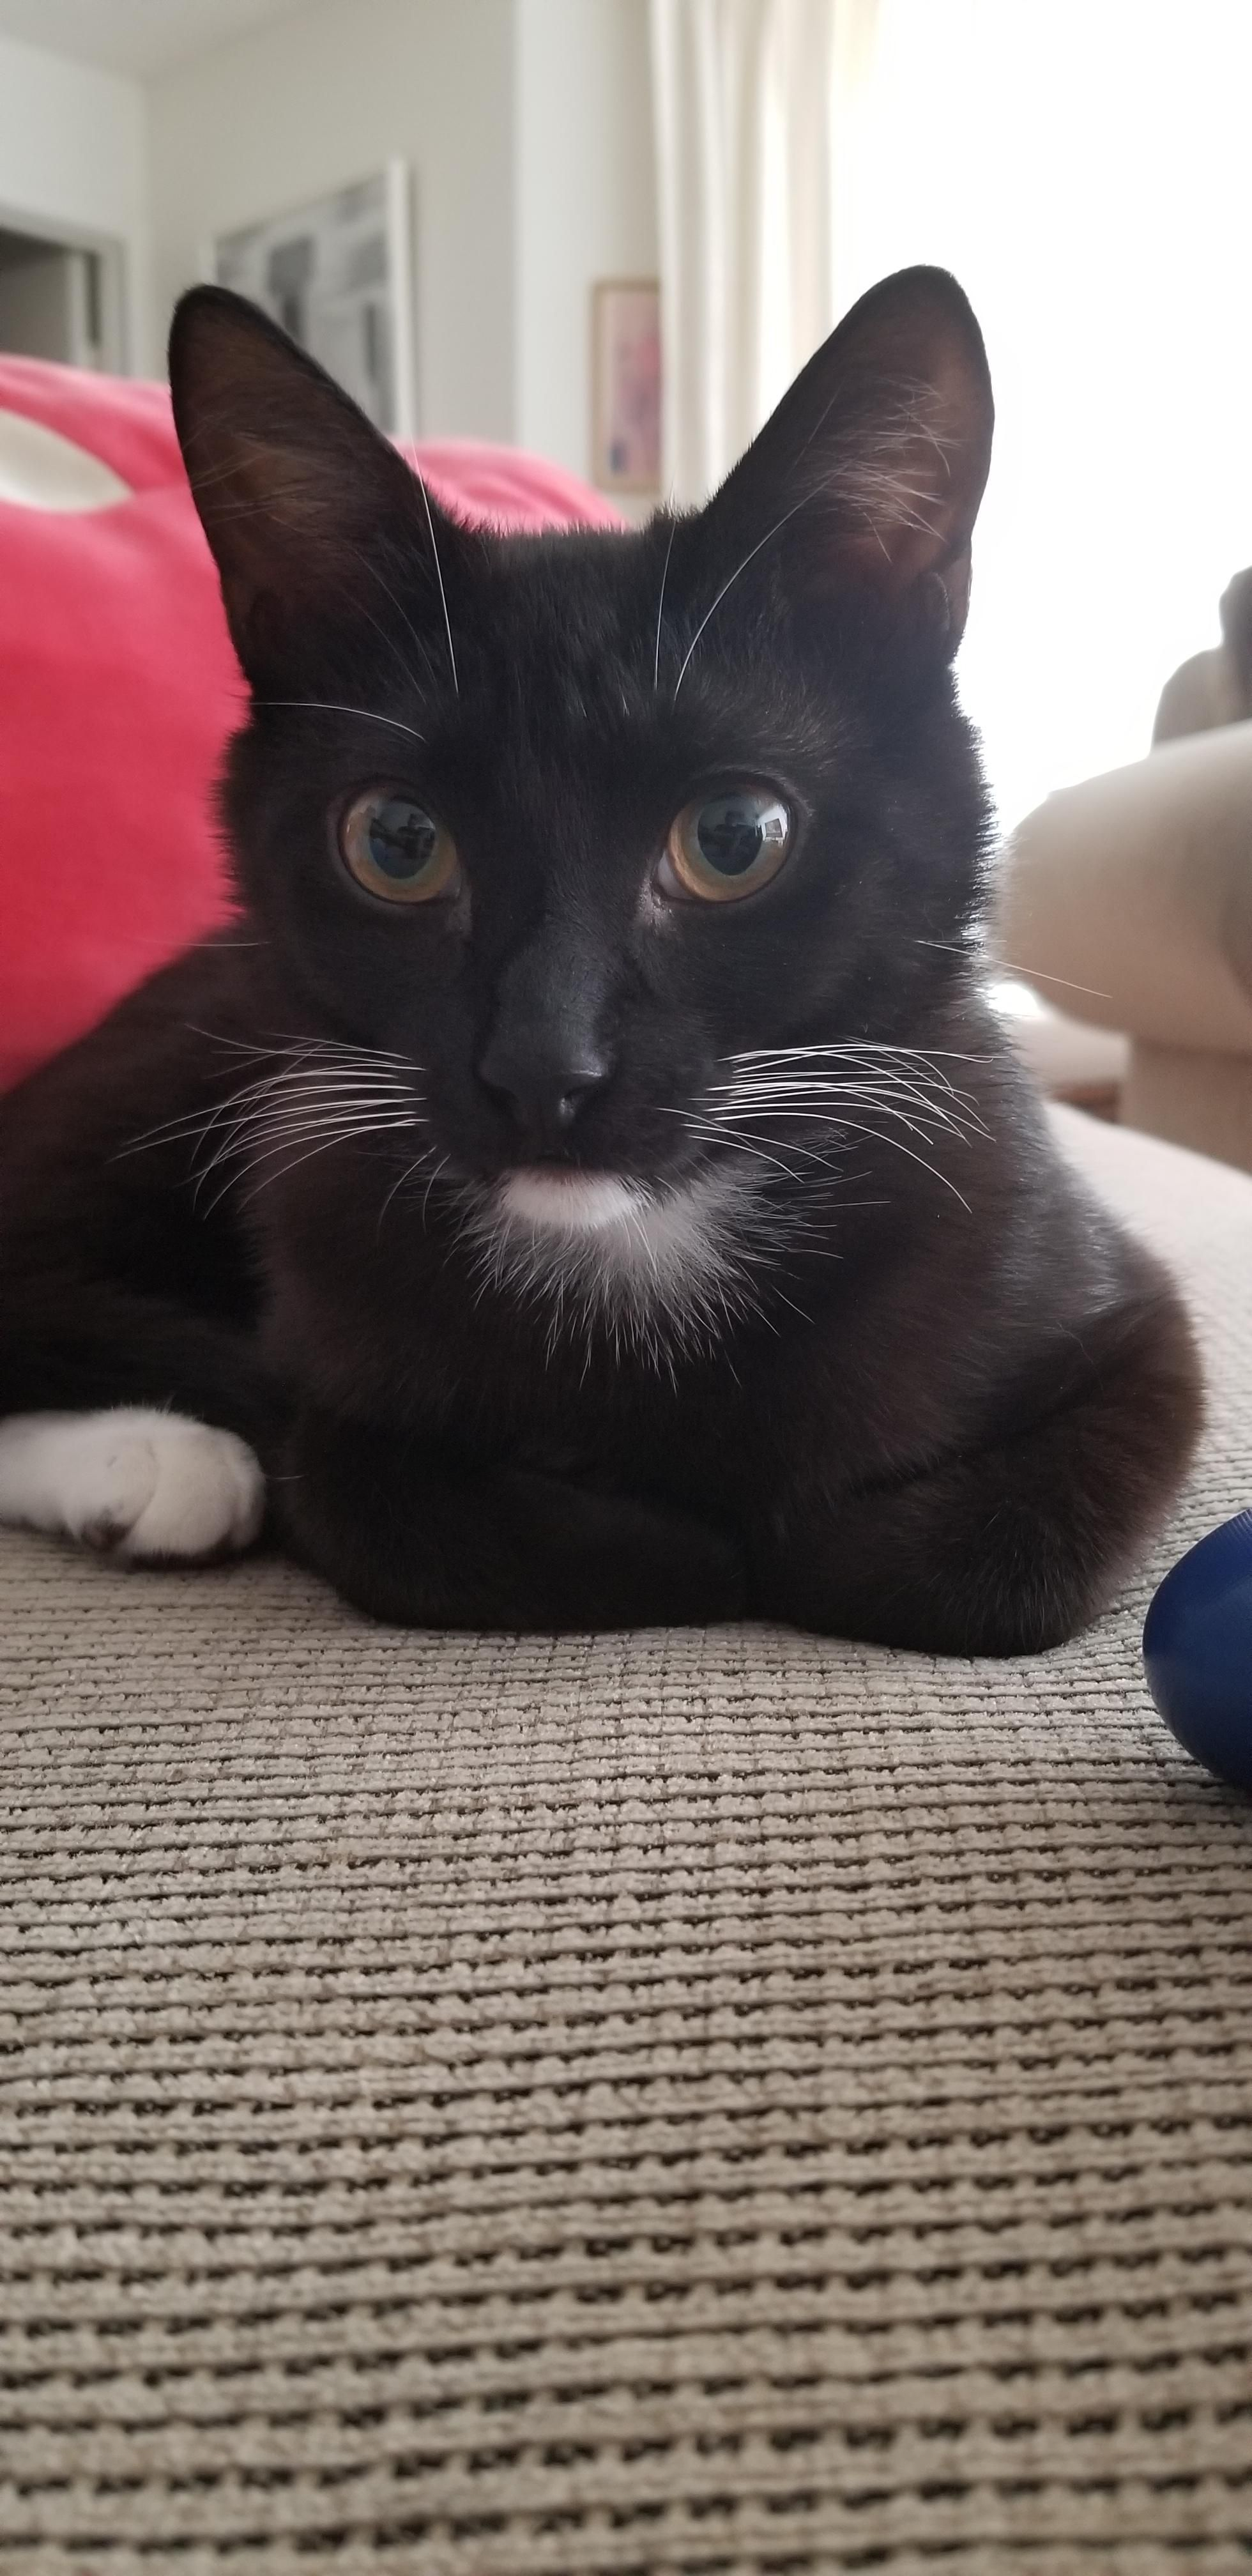 Reddit Meet My Handsome Boy Tk Tuxedo Kitty He S Trouble But He S My Sweet Handsome Boy Too Aww Cute Animals Cats Aww Cute Cats And Dogs Handsome Boys Cute Kitty